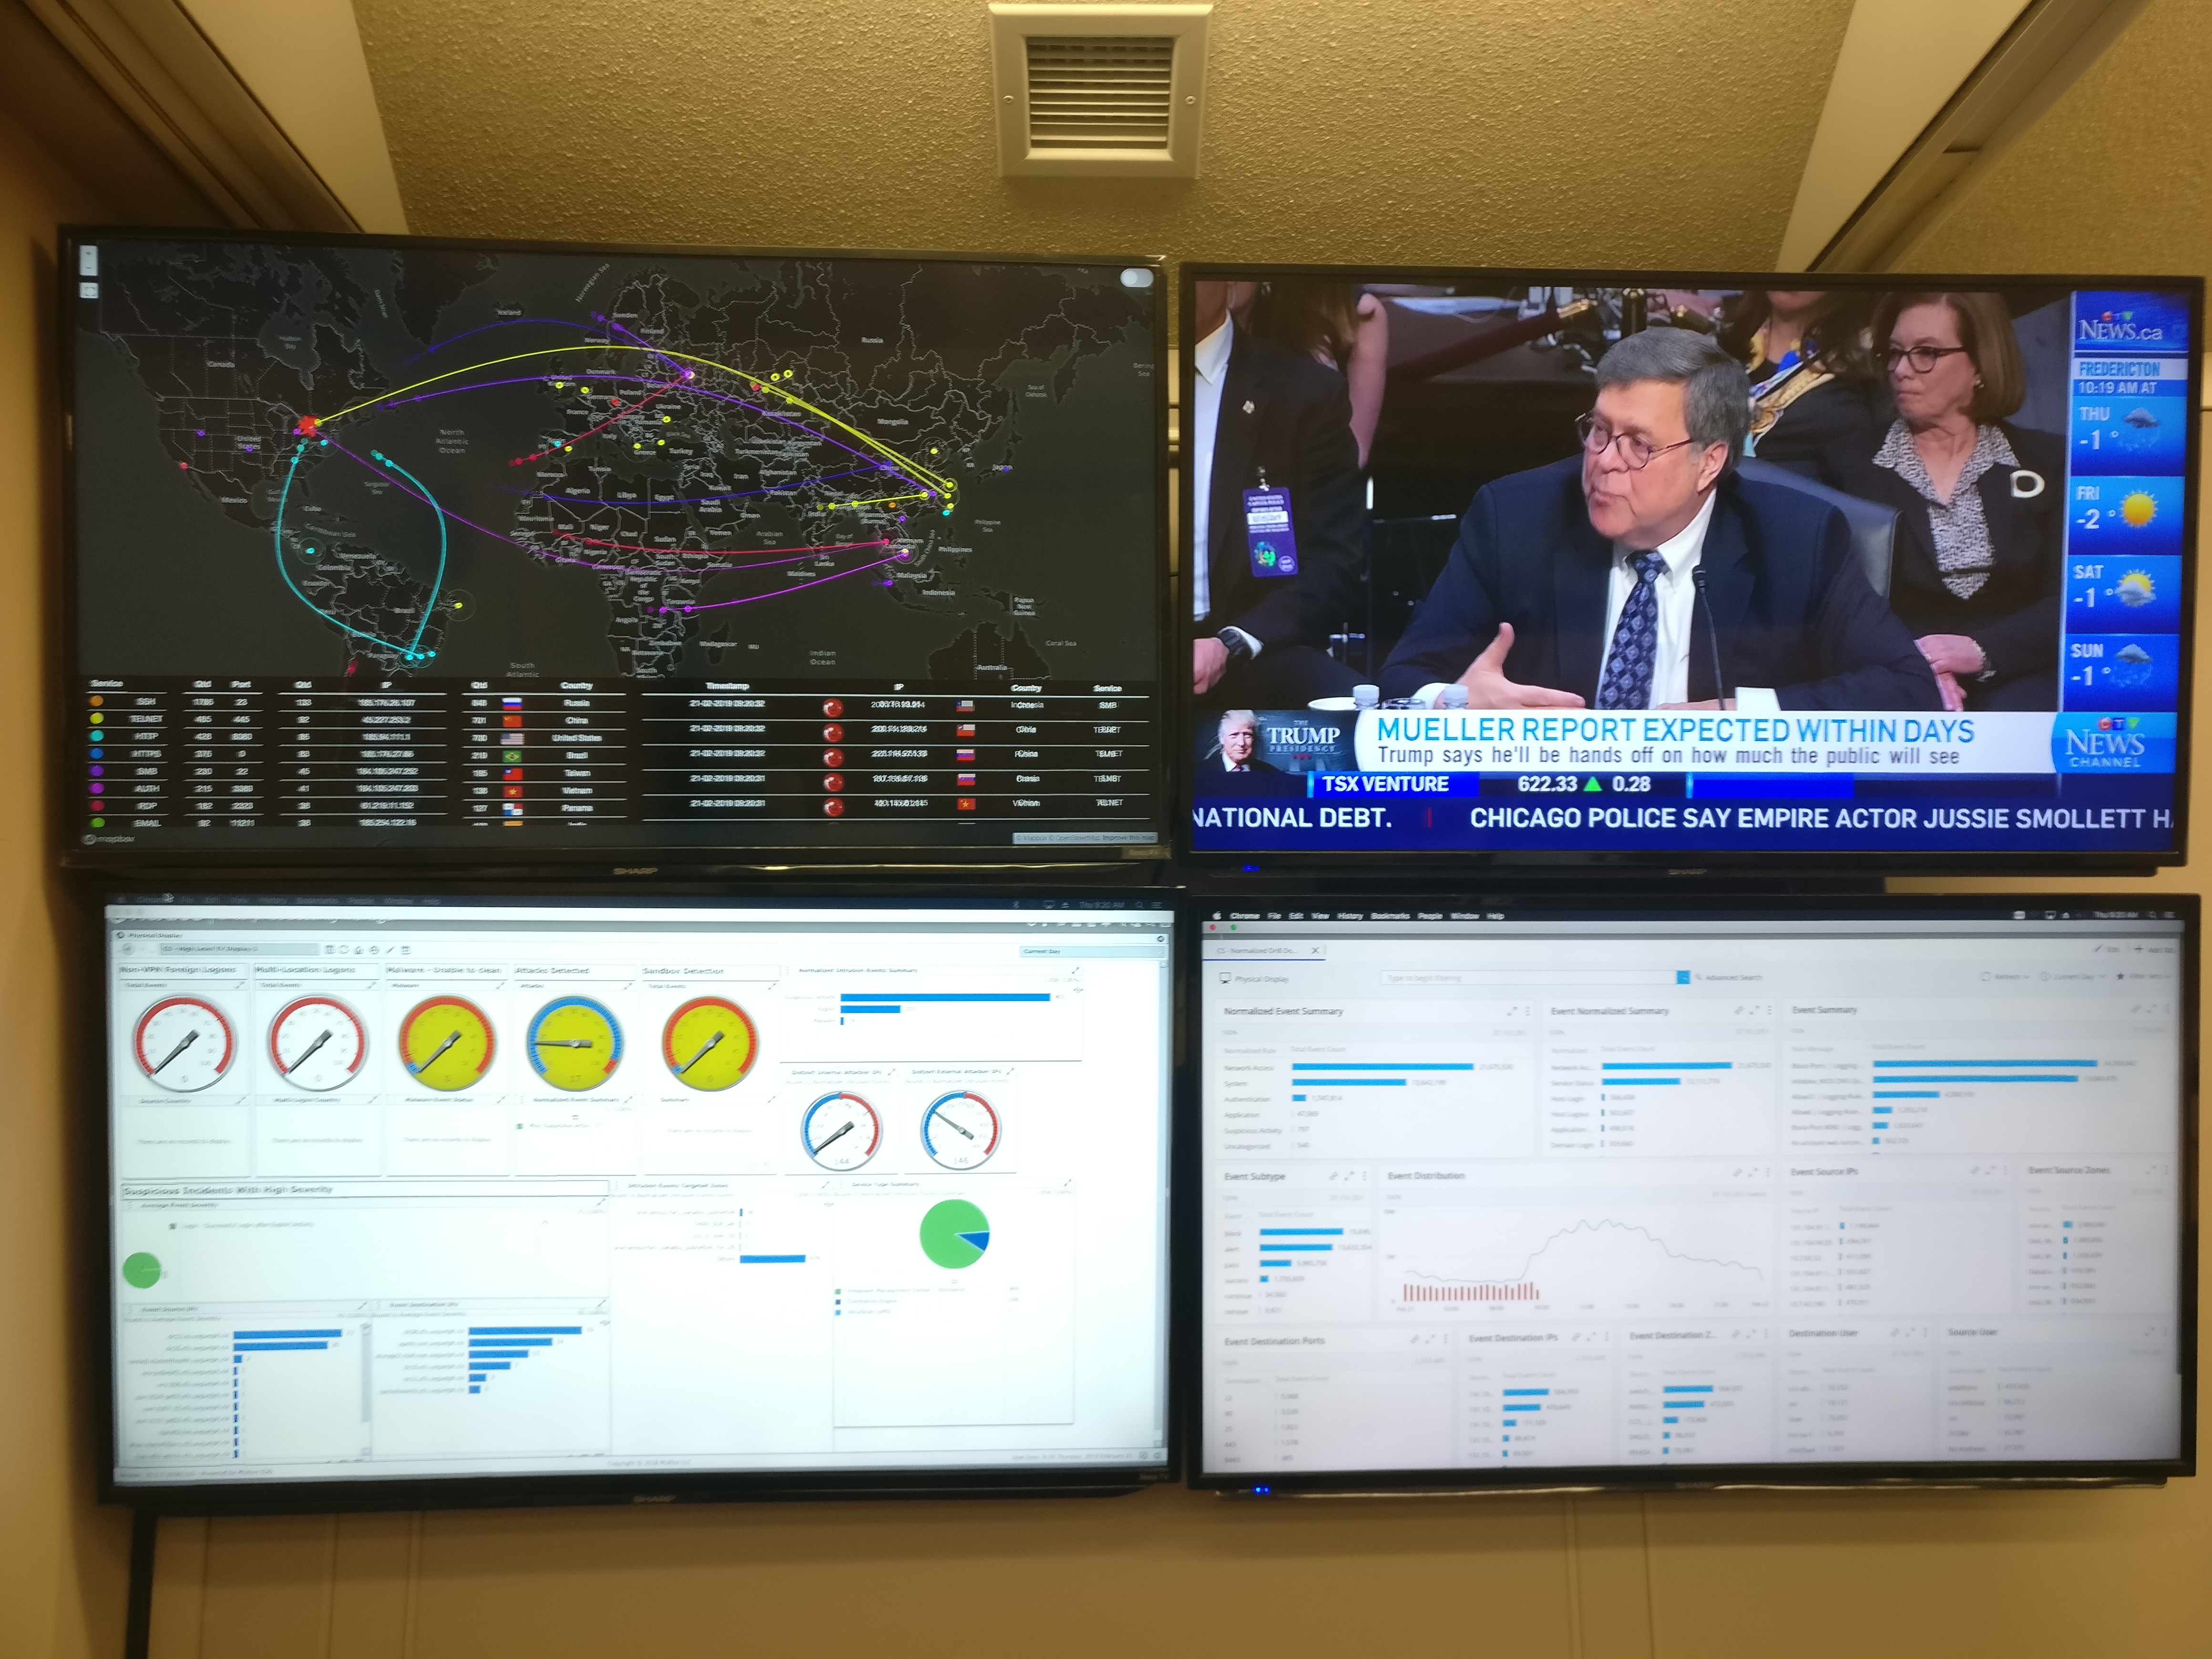 SOC Video Wall: Threat Map, Security Dashboard, and News Channel.